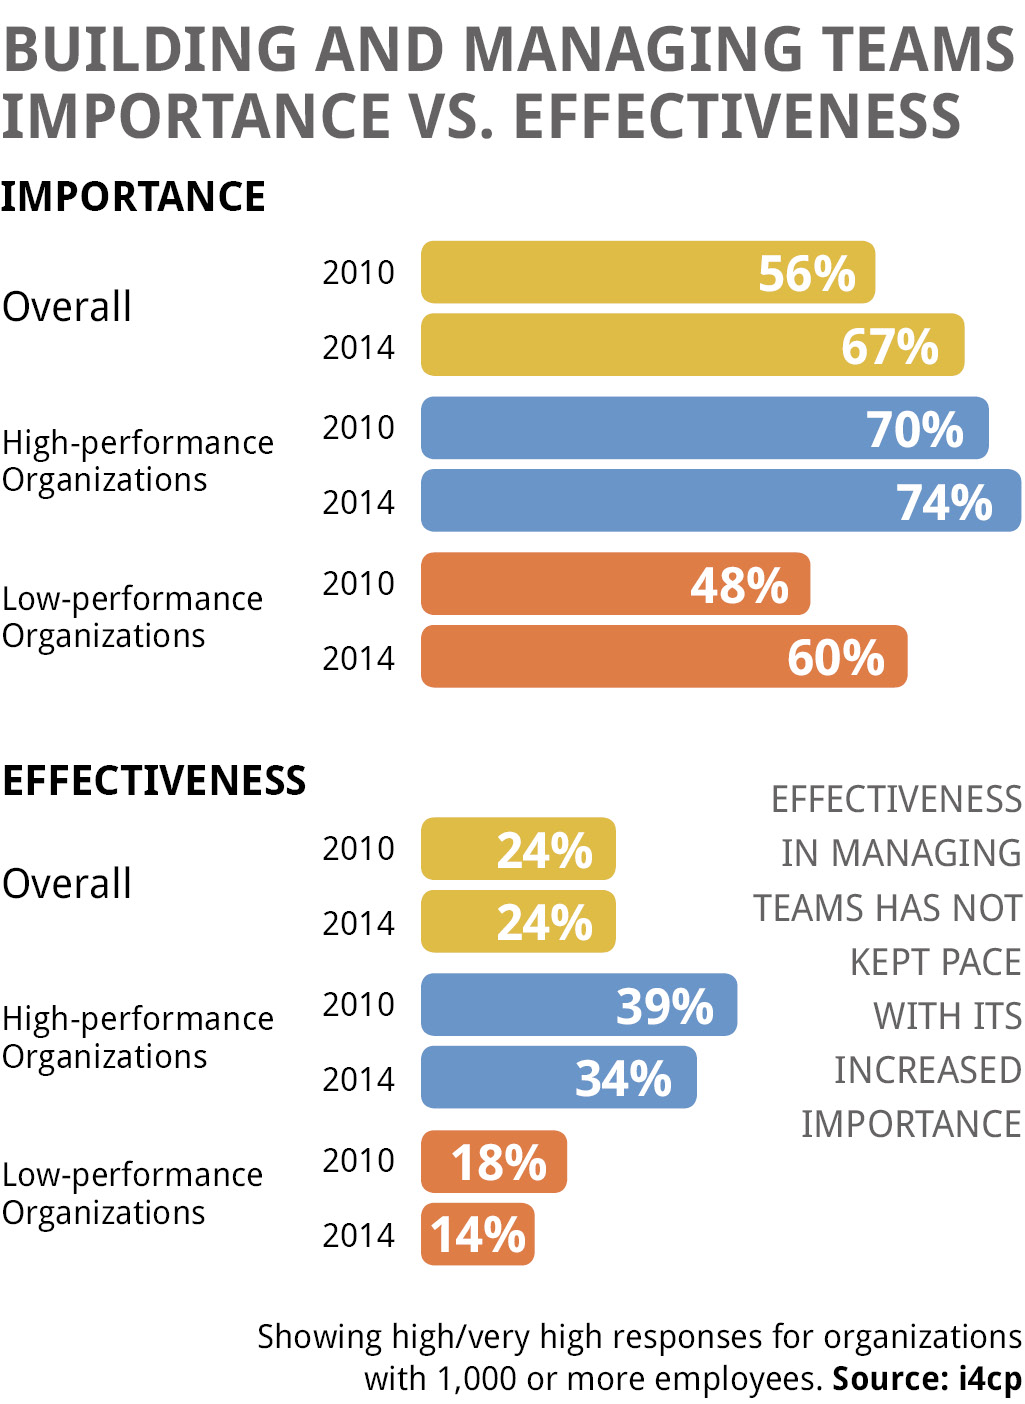 Building and Managing Teams: Importance vs. Effectiveness